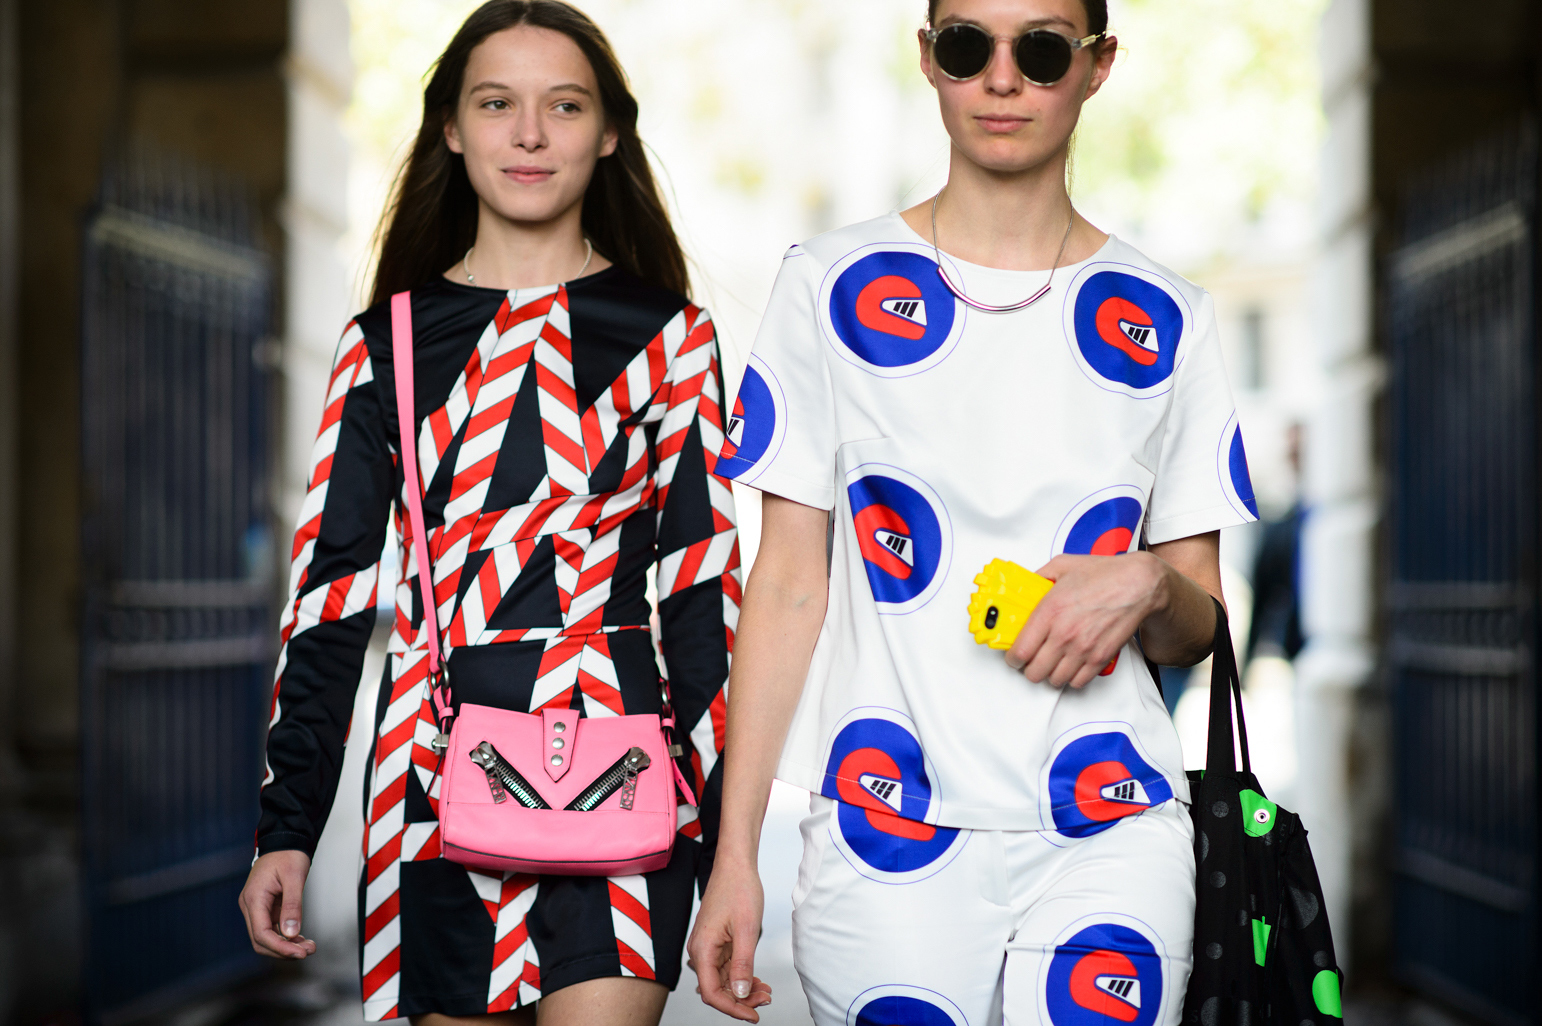 london-spring-2015-street-style-day-1-12-w-mag2